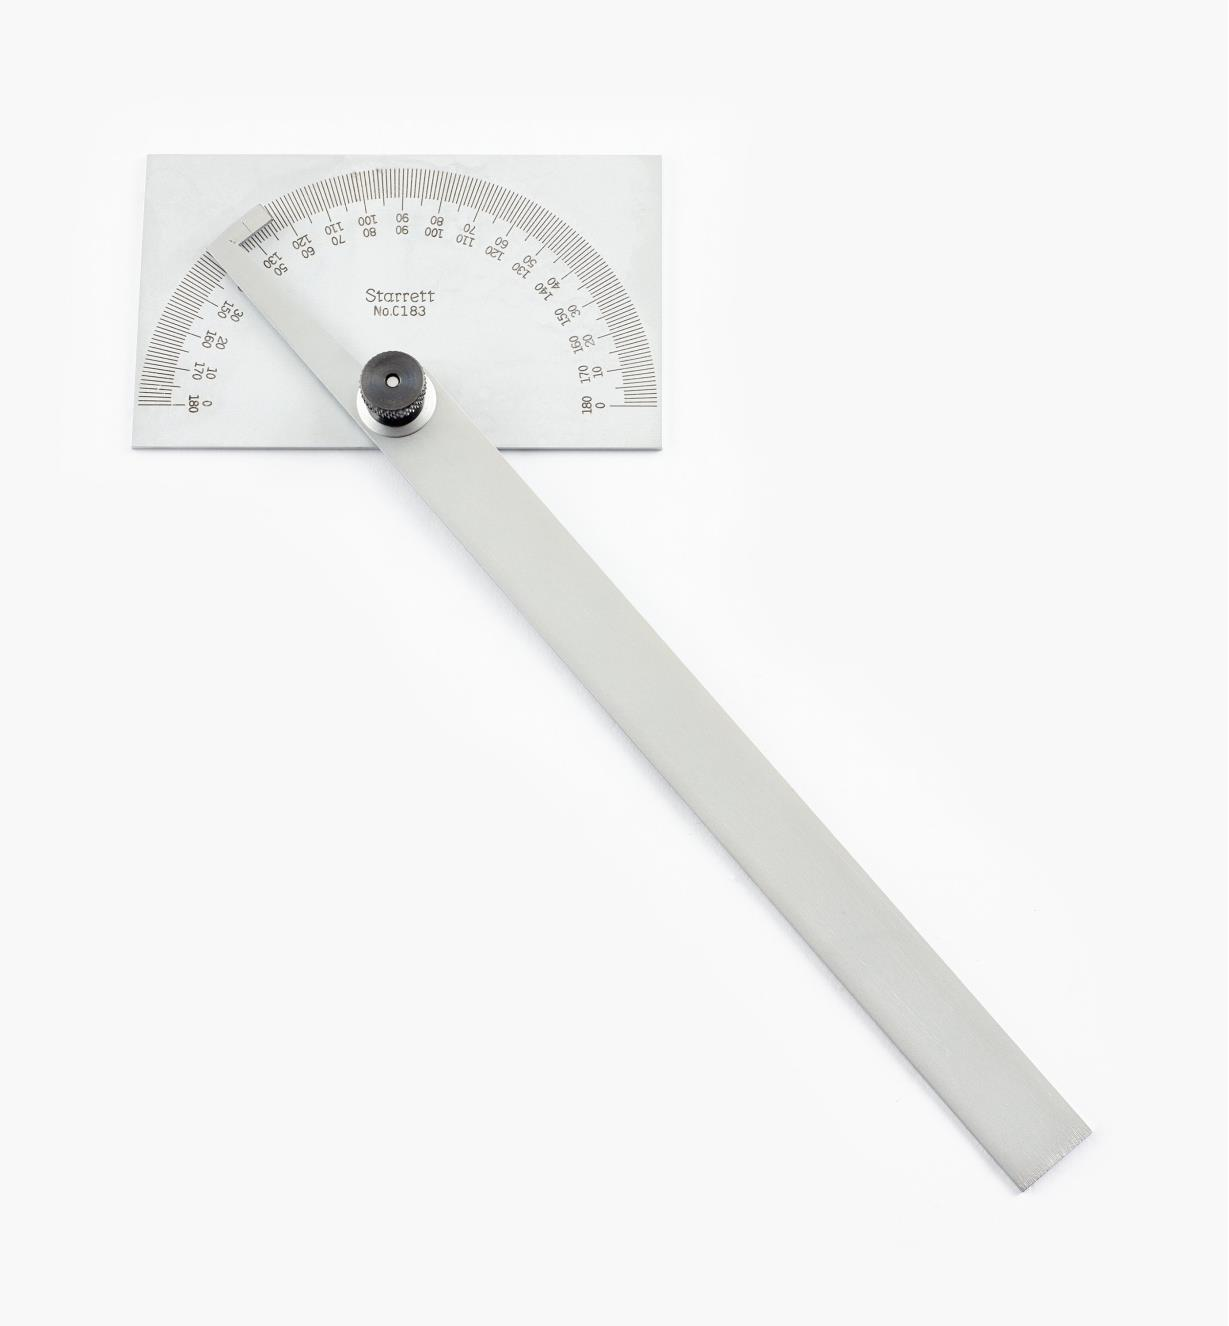 30N0401 - Rectangular Protractor